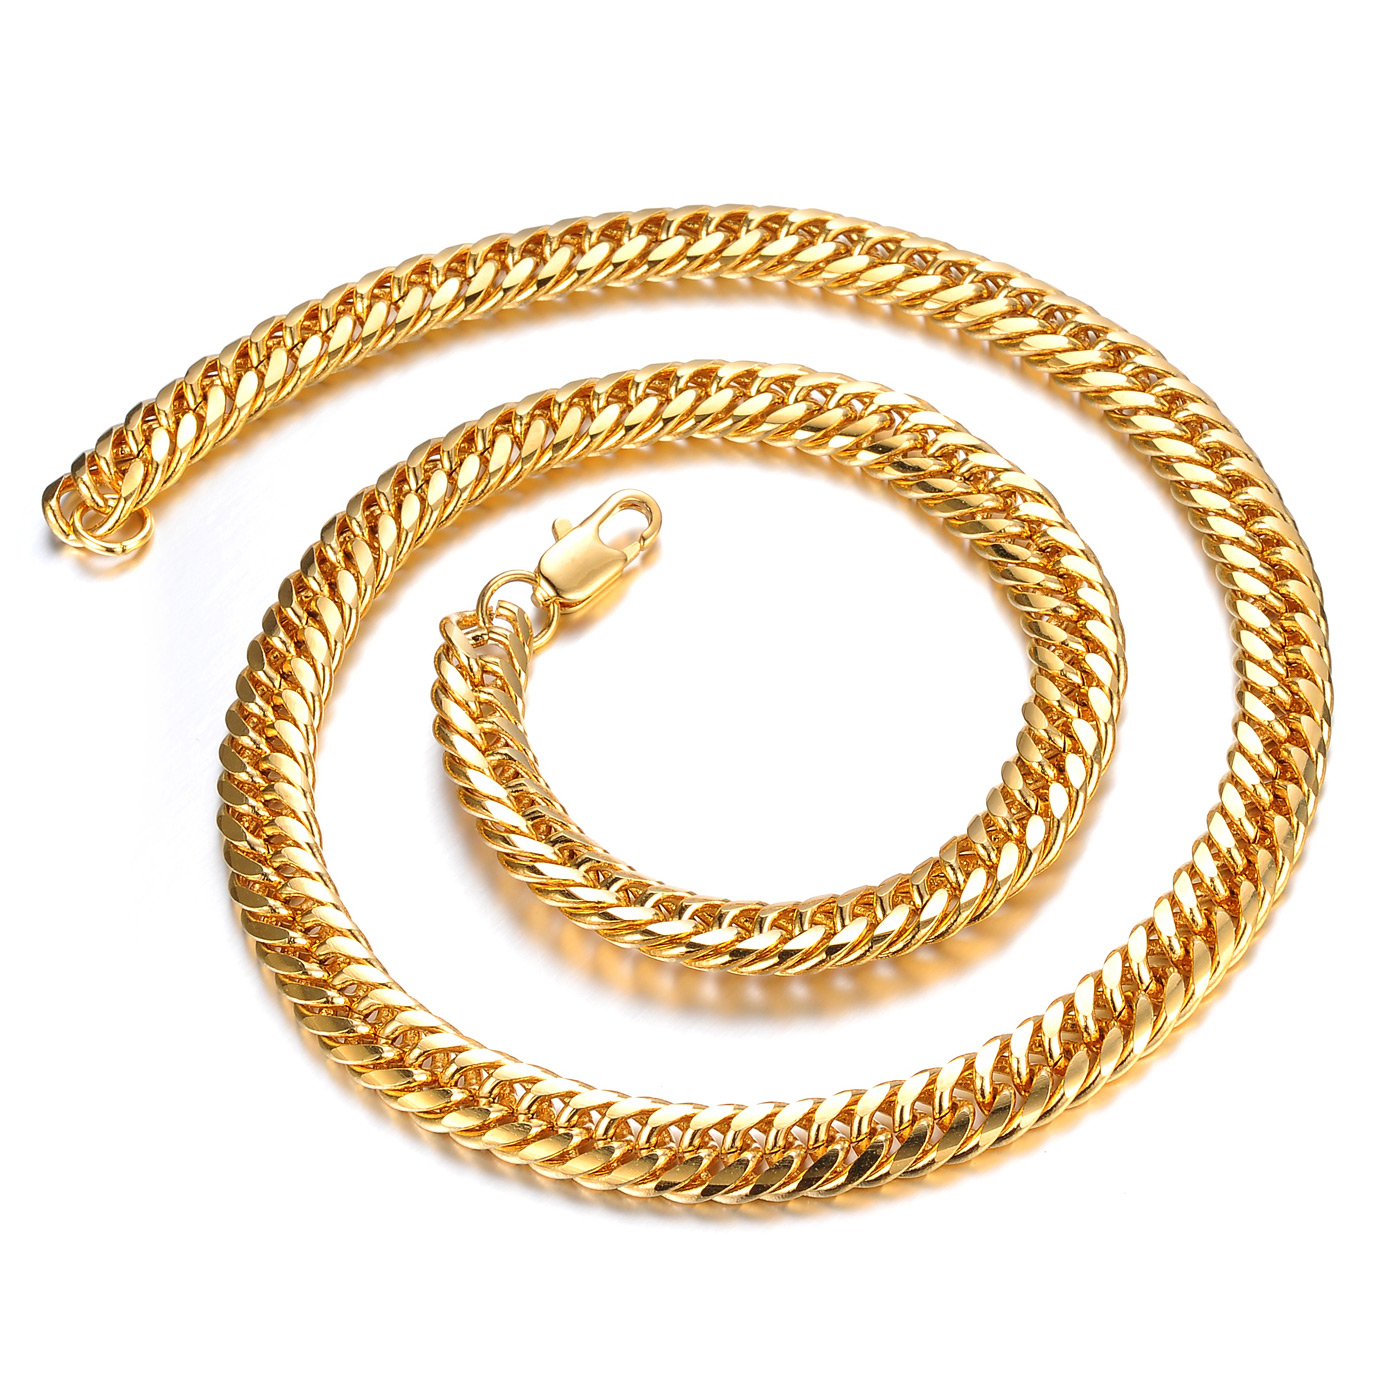 8mm Wide 18K Copper Yellow Gold Filled Necklaces Hammered Curb Cuban Chain 19inch Necklace Golden Men Jewelry Wedding Jewellery(China (Mainland))